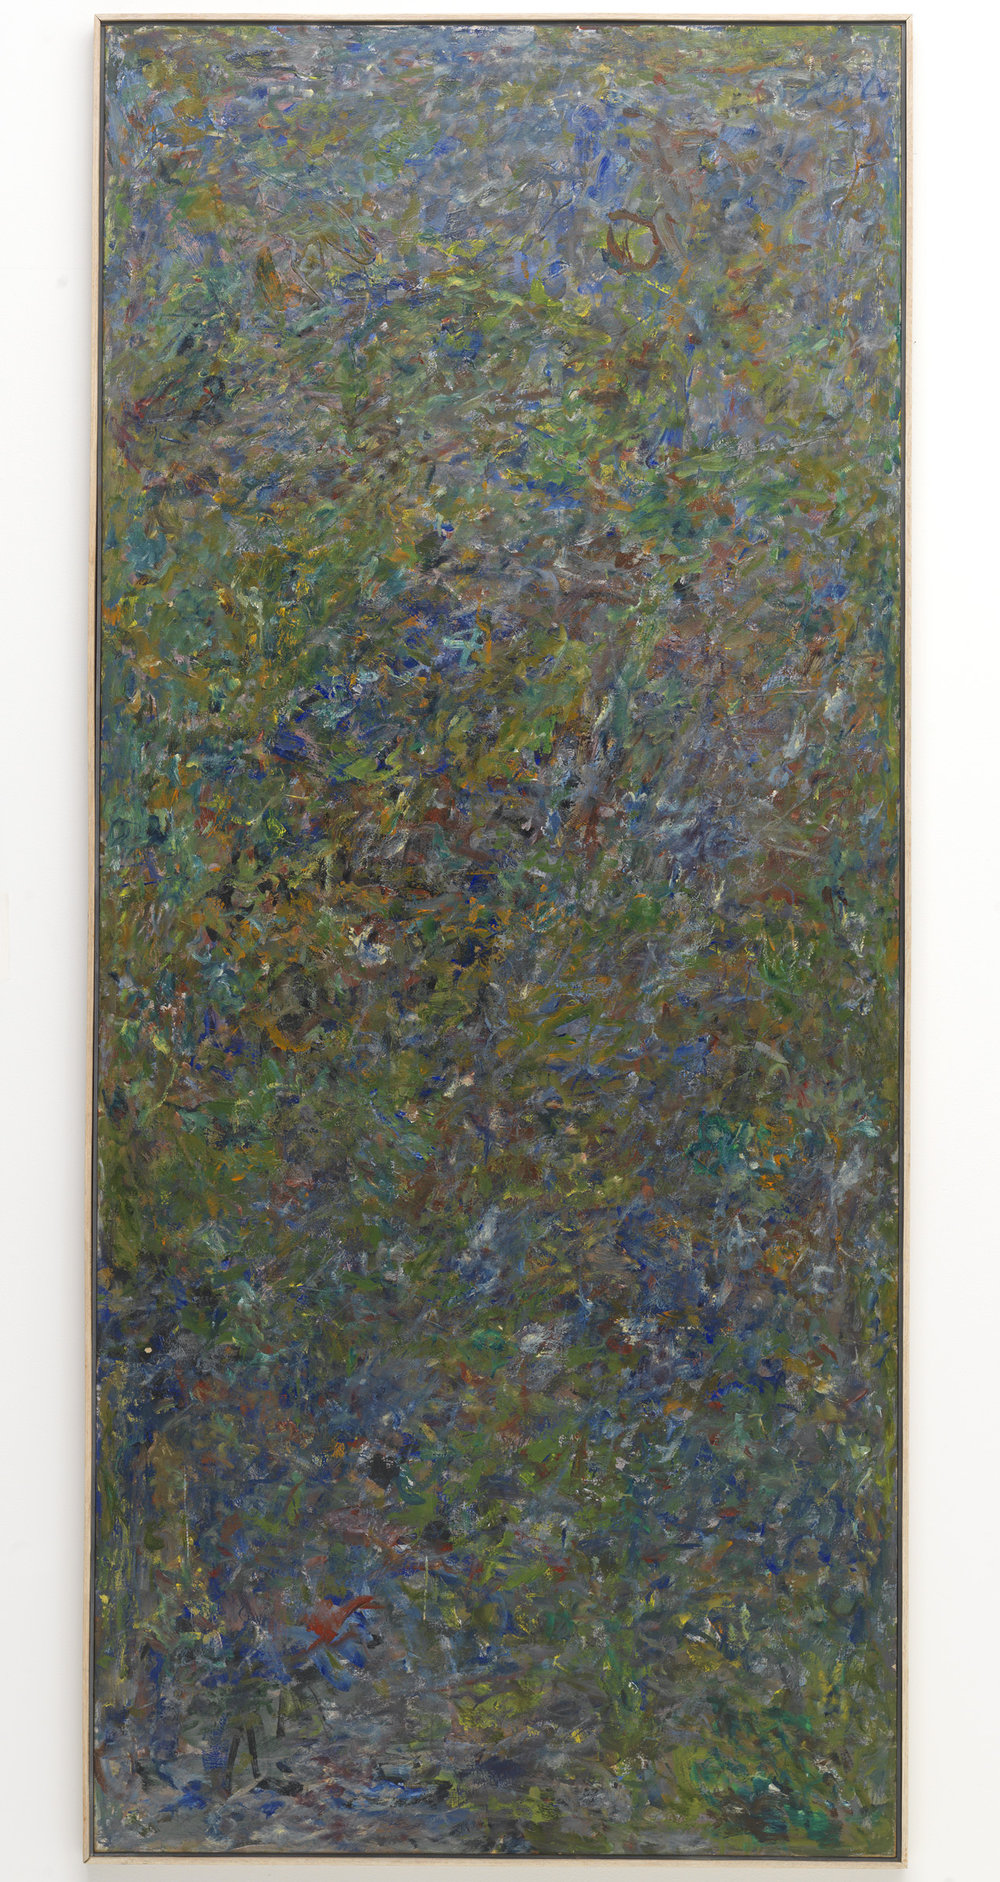 Milton Resnick  Letter , 1960 Oil on canvas 98 x 43 inches